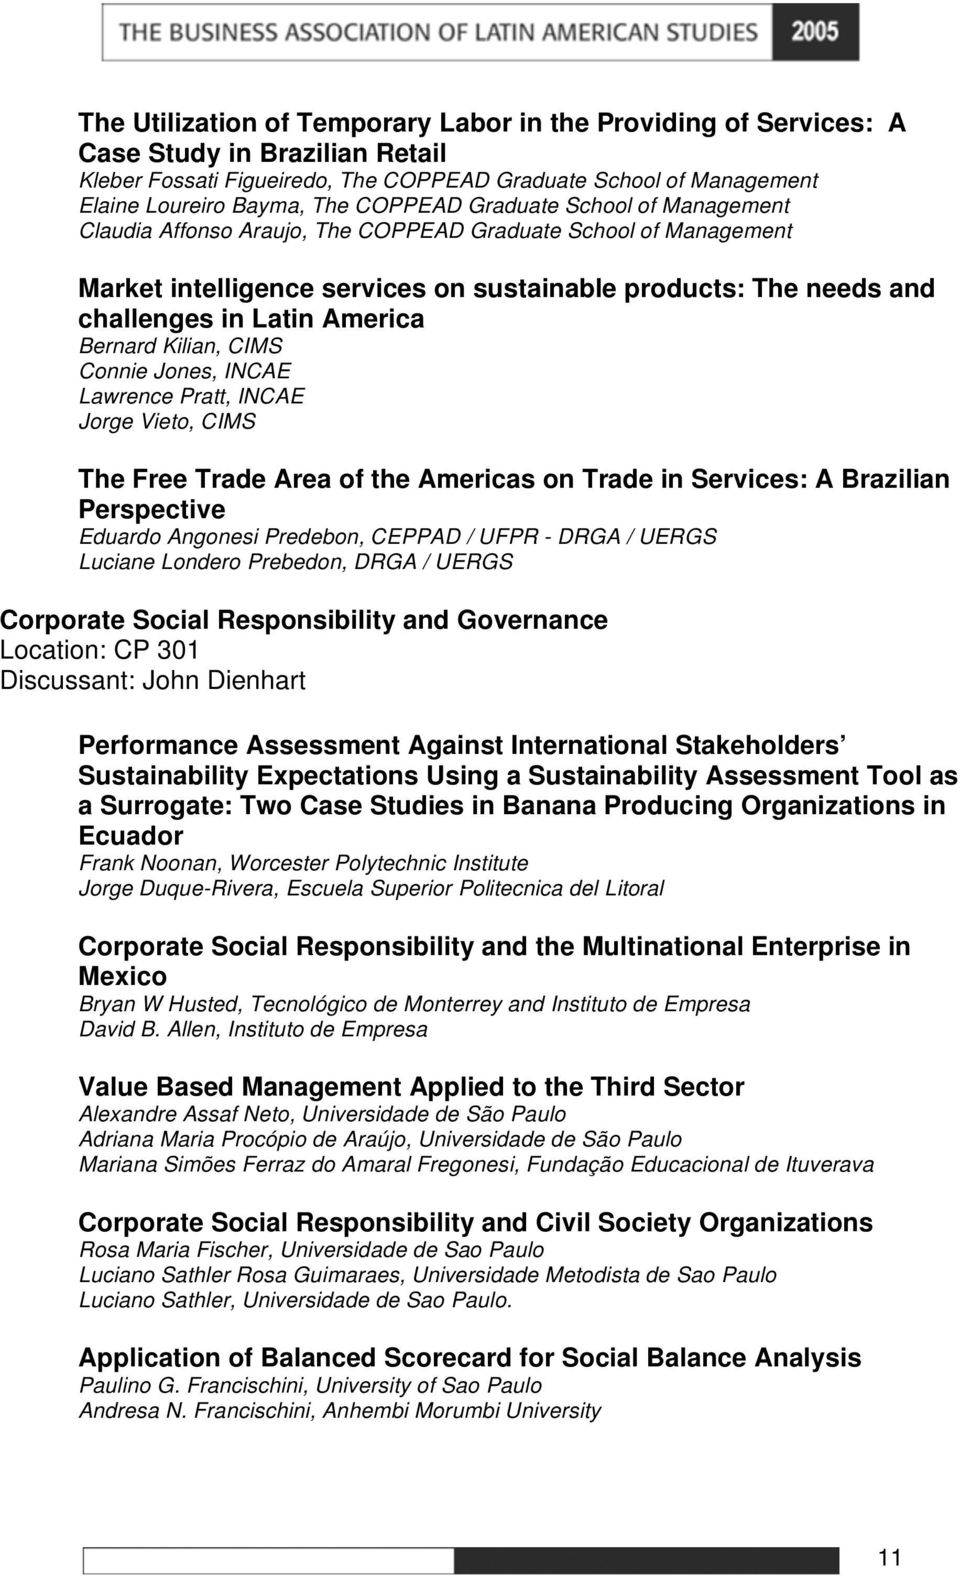 Bernard Kilian, CIMS Connie Jones, INCAE Lawrence Pratt, INCAE Jorge Vieto, CIMS The Free Trade Area of the Americas on Trade in Services: A Brazilian Perspective Eduardo Angonesi Predebon, CEPPAD /